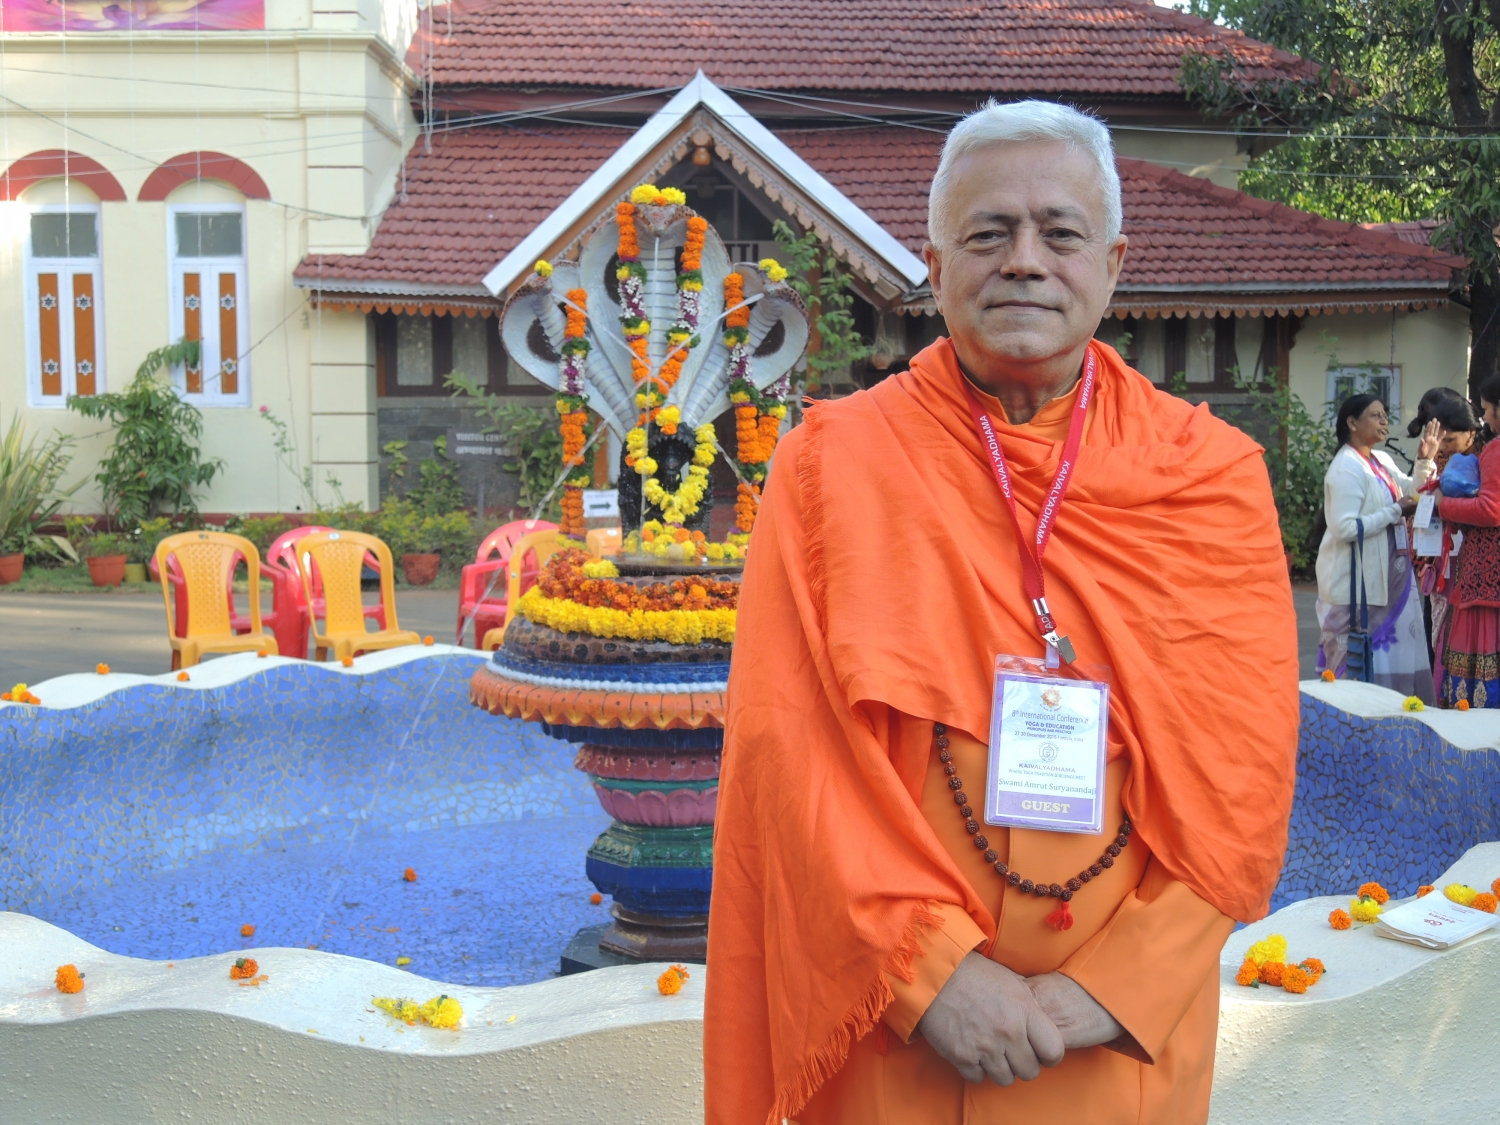 8th International Conference, Yoga & Education, Principles and Practice - Keivalyadhama Yoga Institute, Lonavala, Índia - 2015, Dezembro